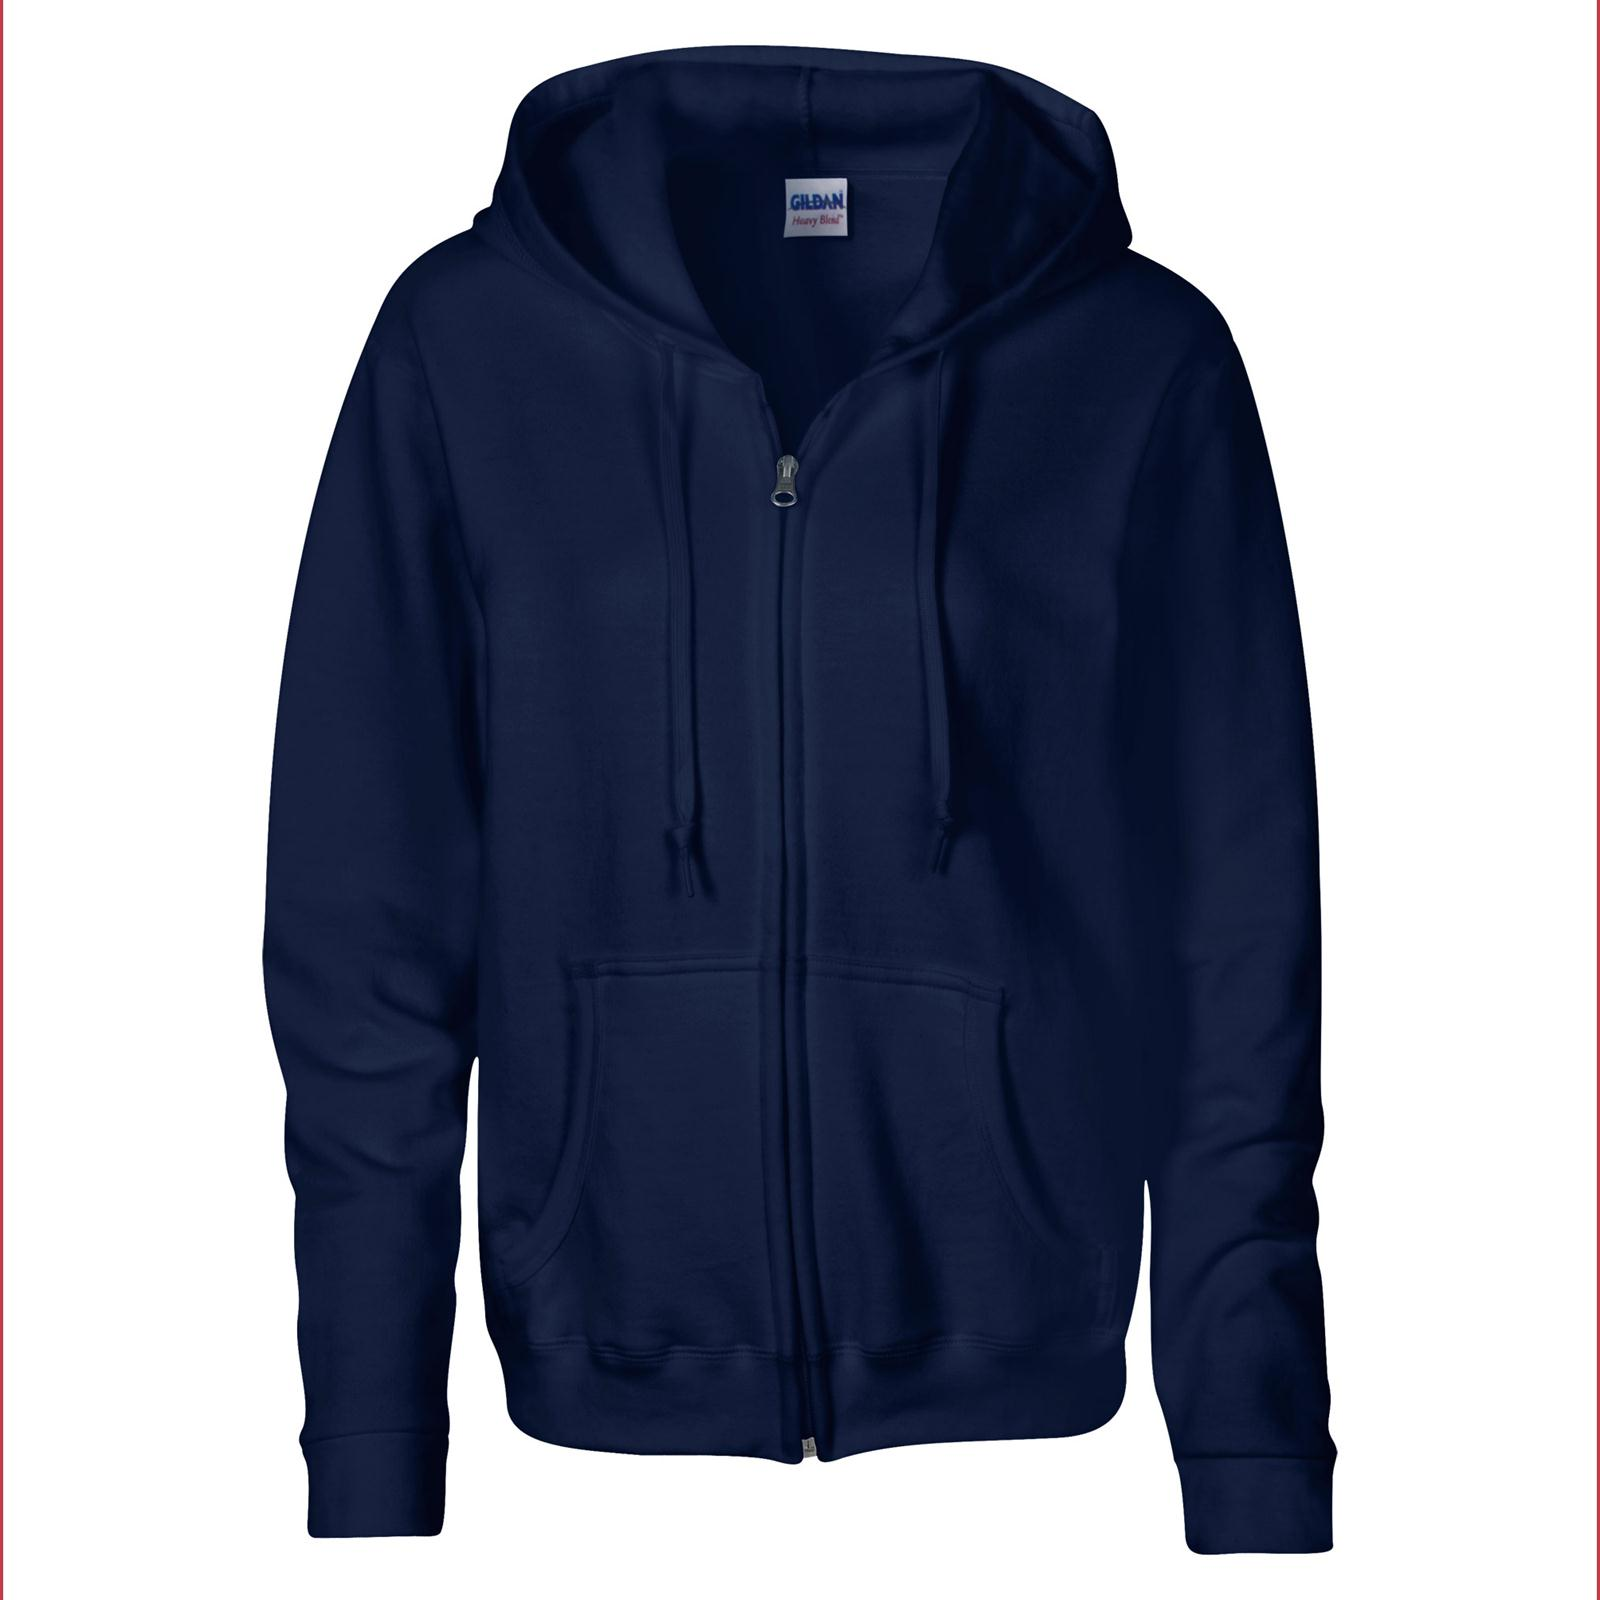 Navy Zip Up Hoodie Womens